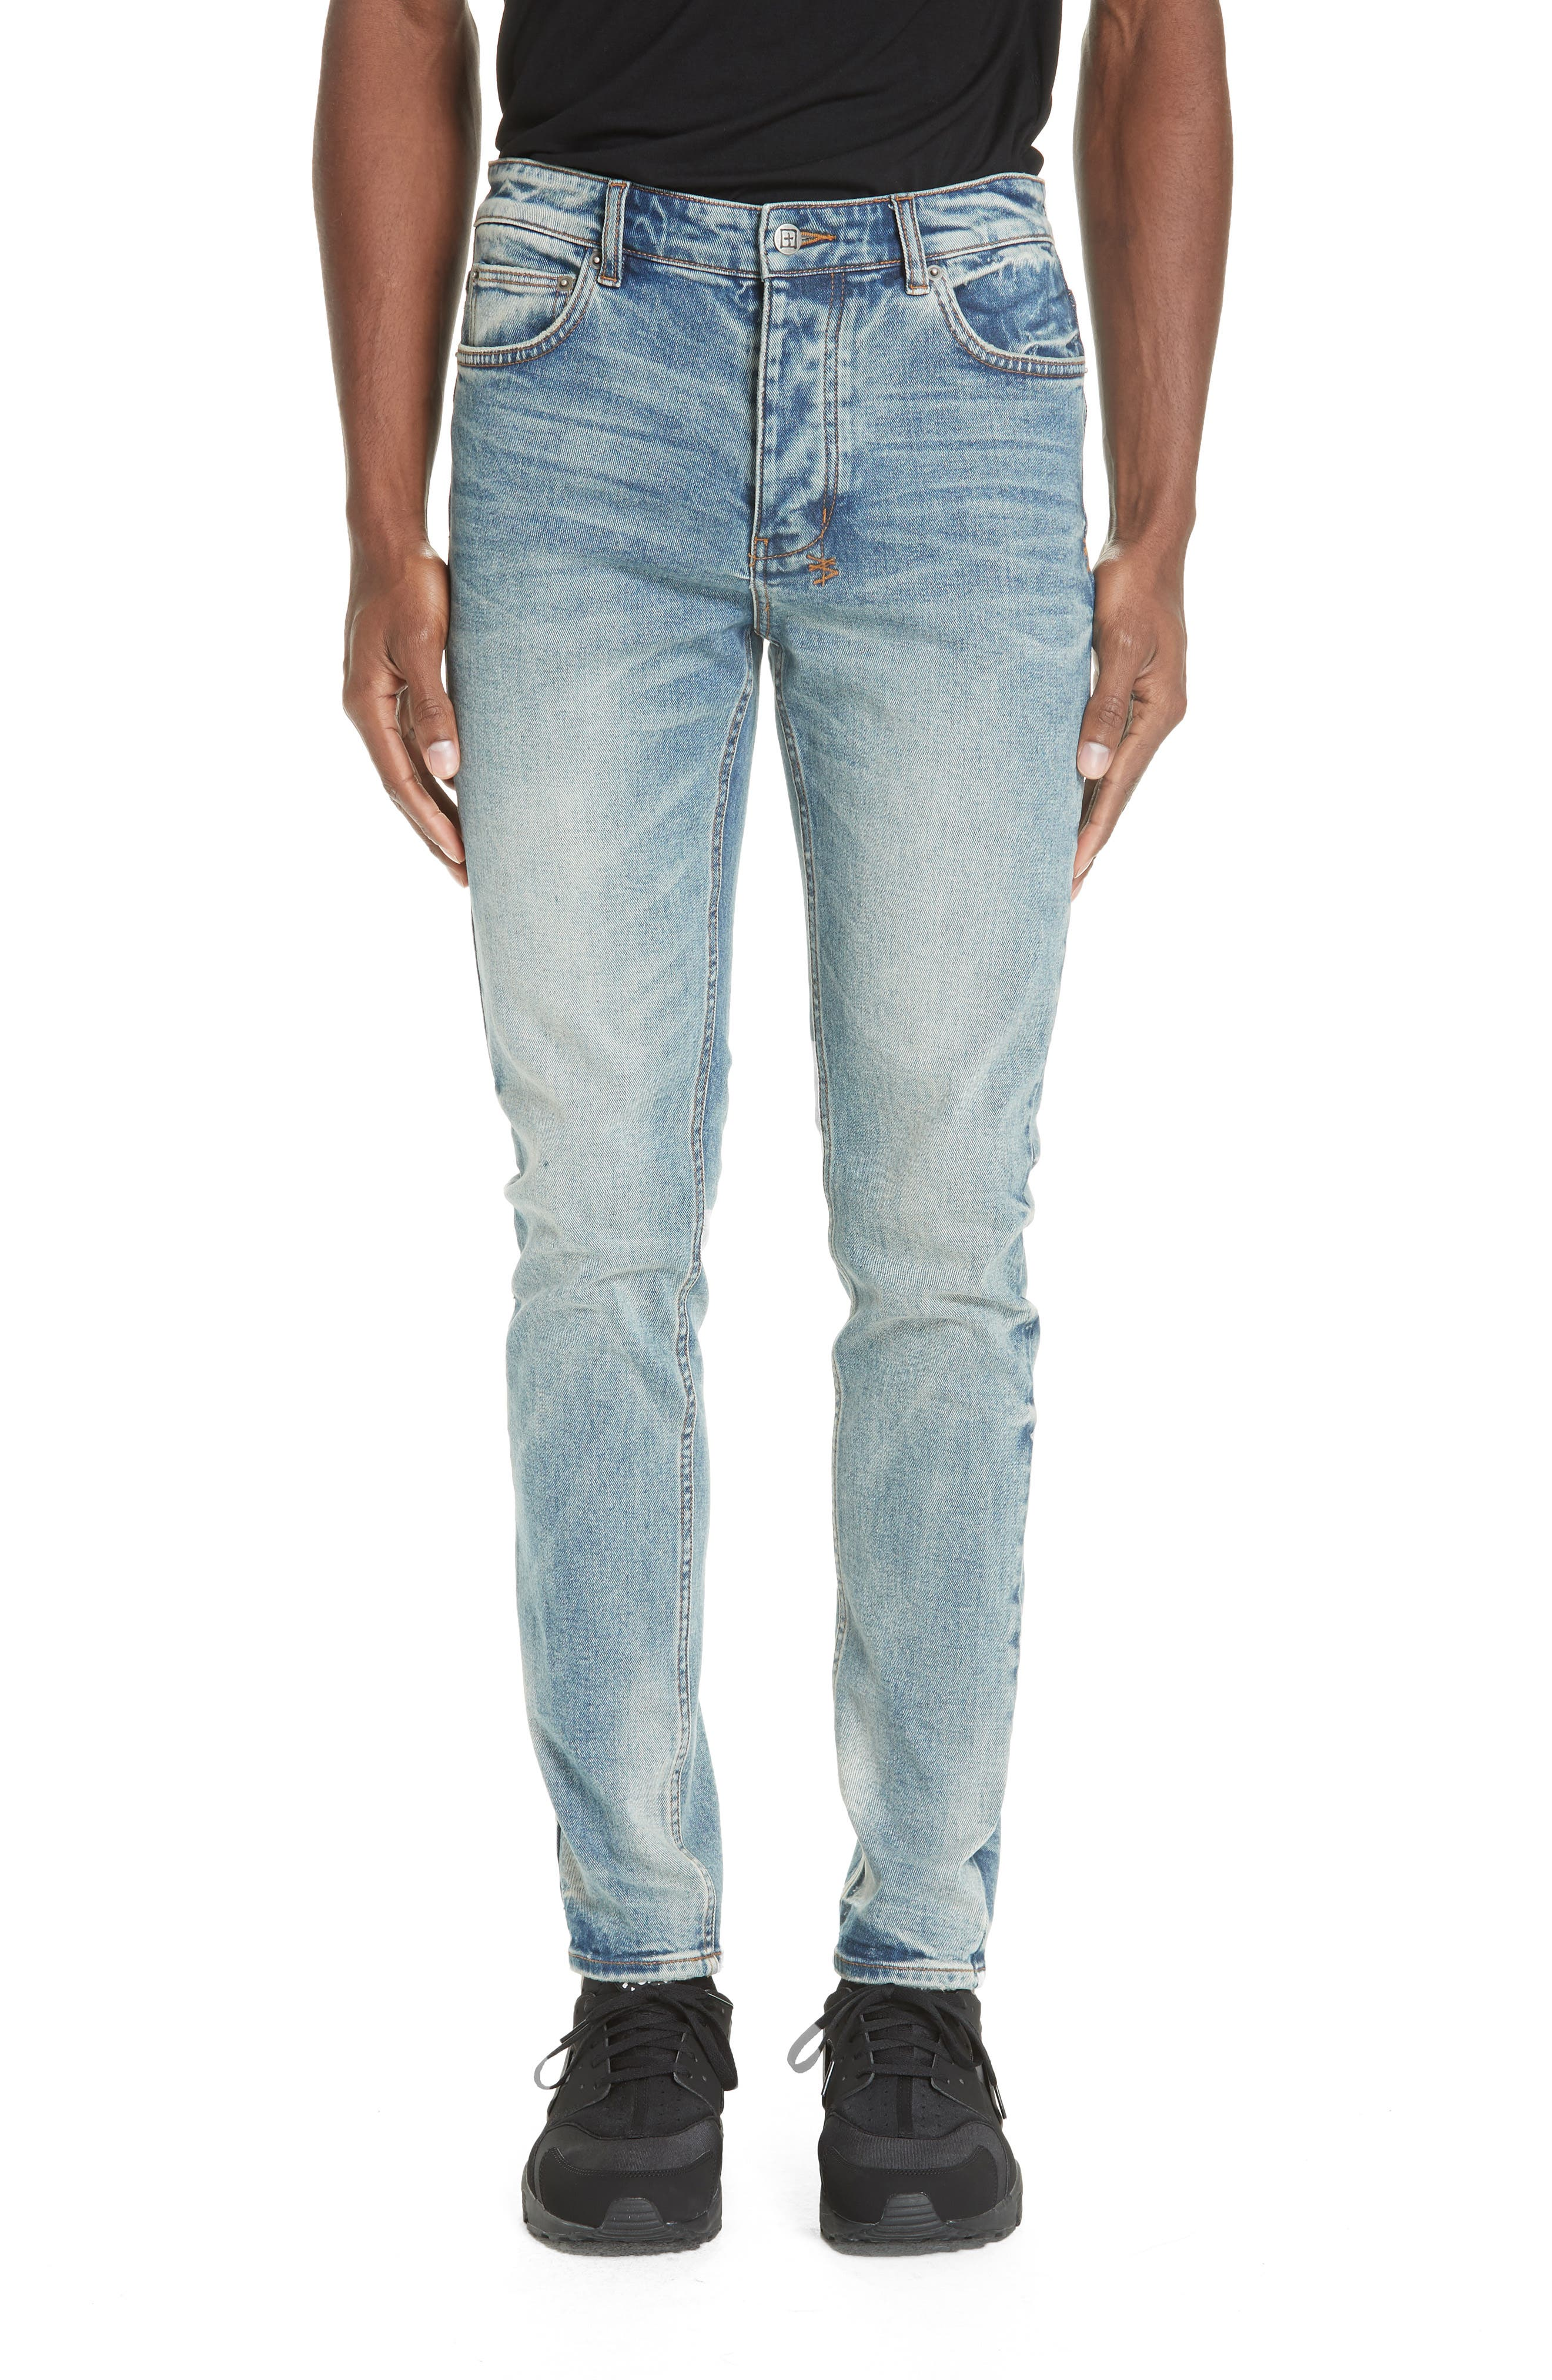 Chitch Pure Dynamite Skinny Fit Jeans,                             Main thumbnail 1, color,                             DENIM